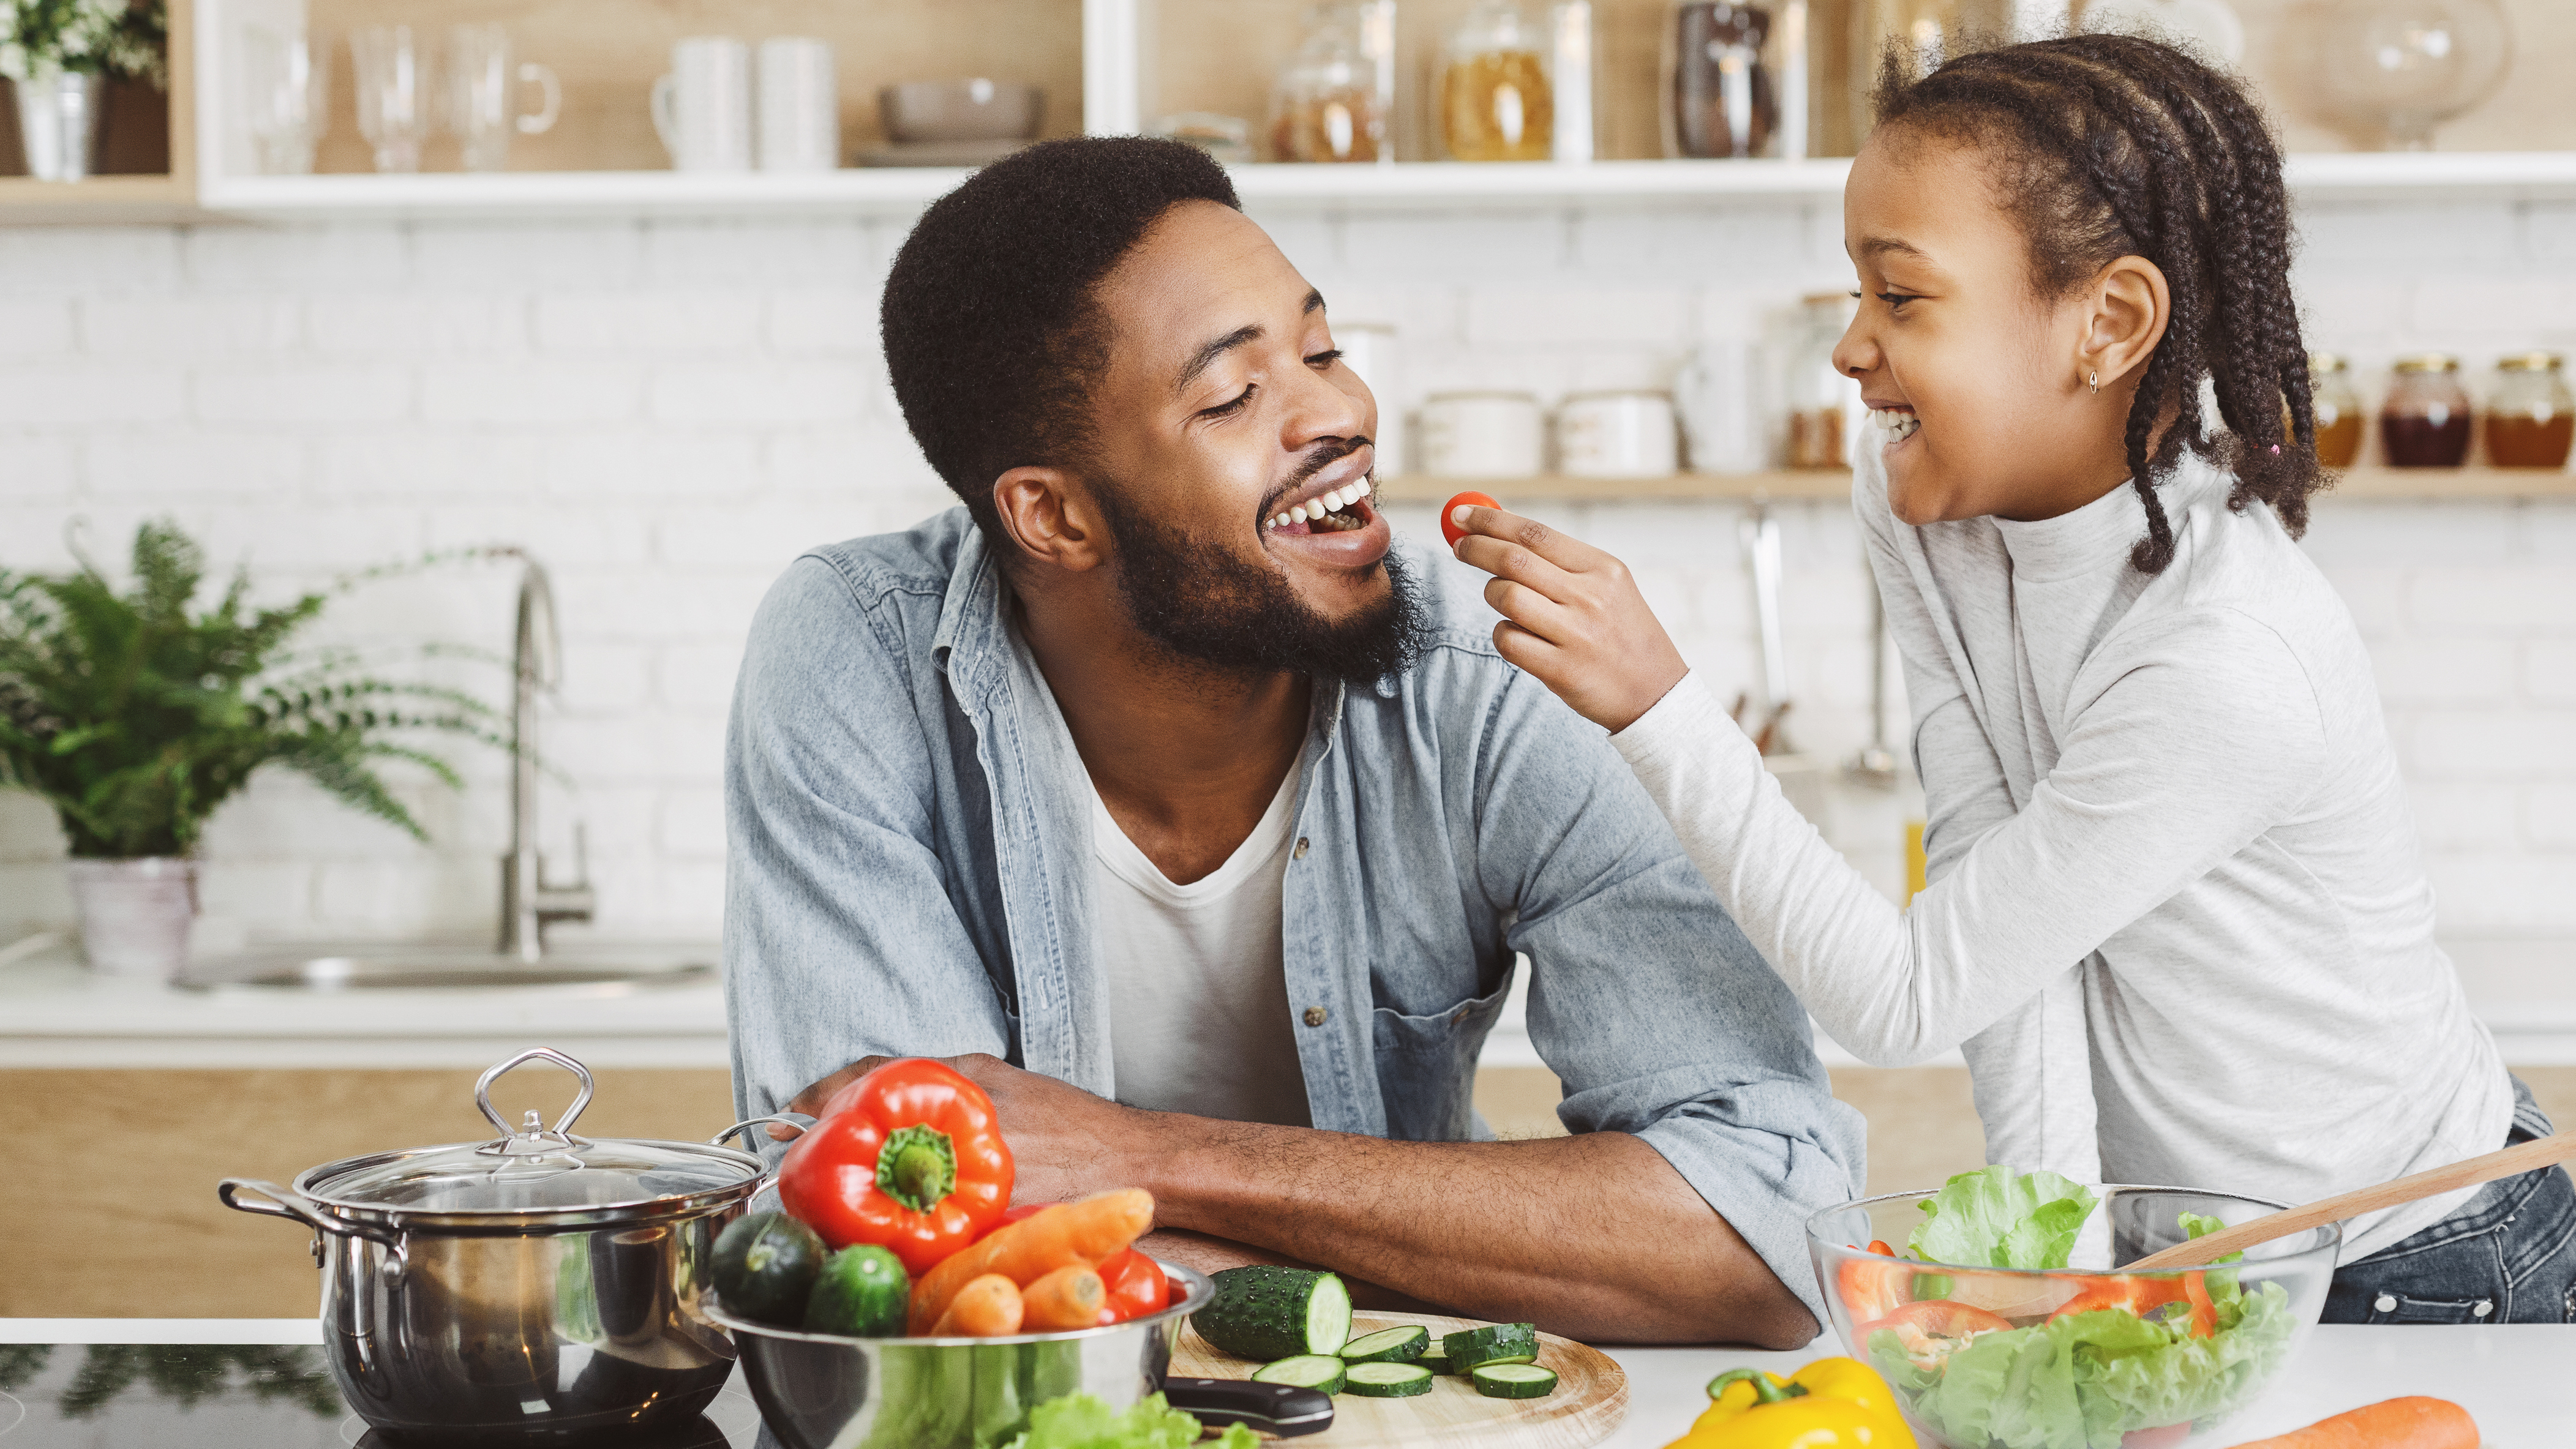 A father and young daughter having fun in the kitchen preparing healthy plant-based food